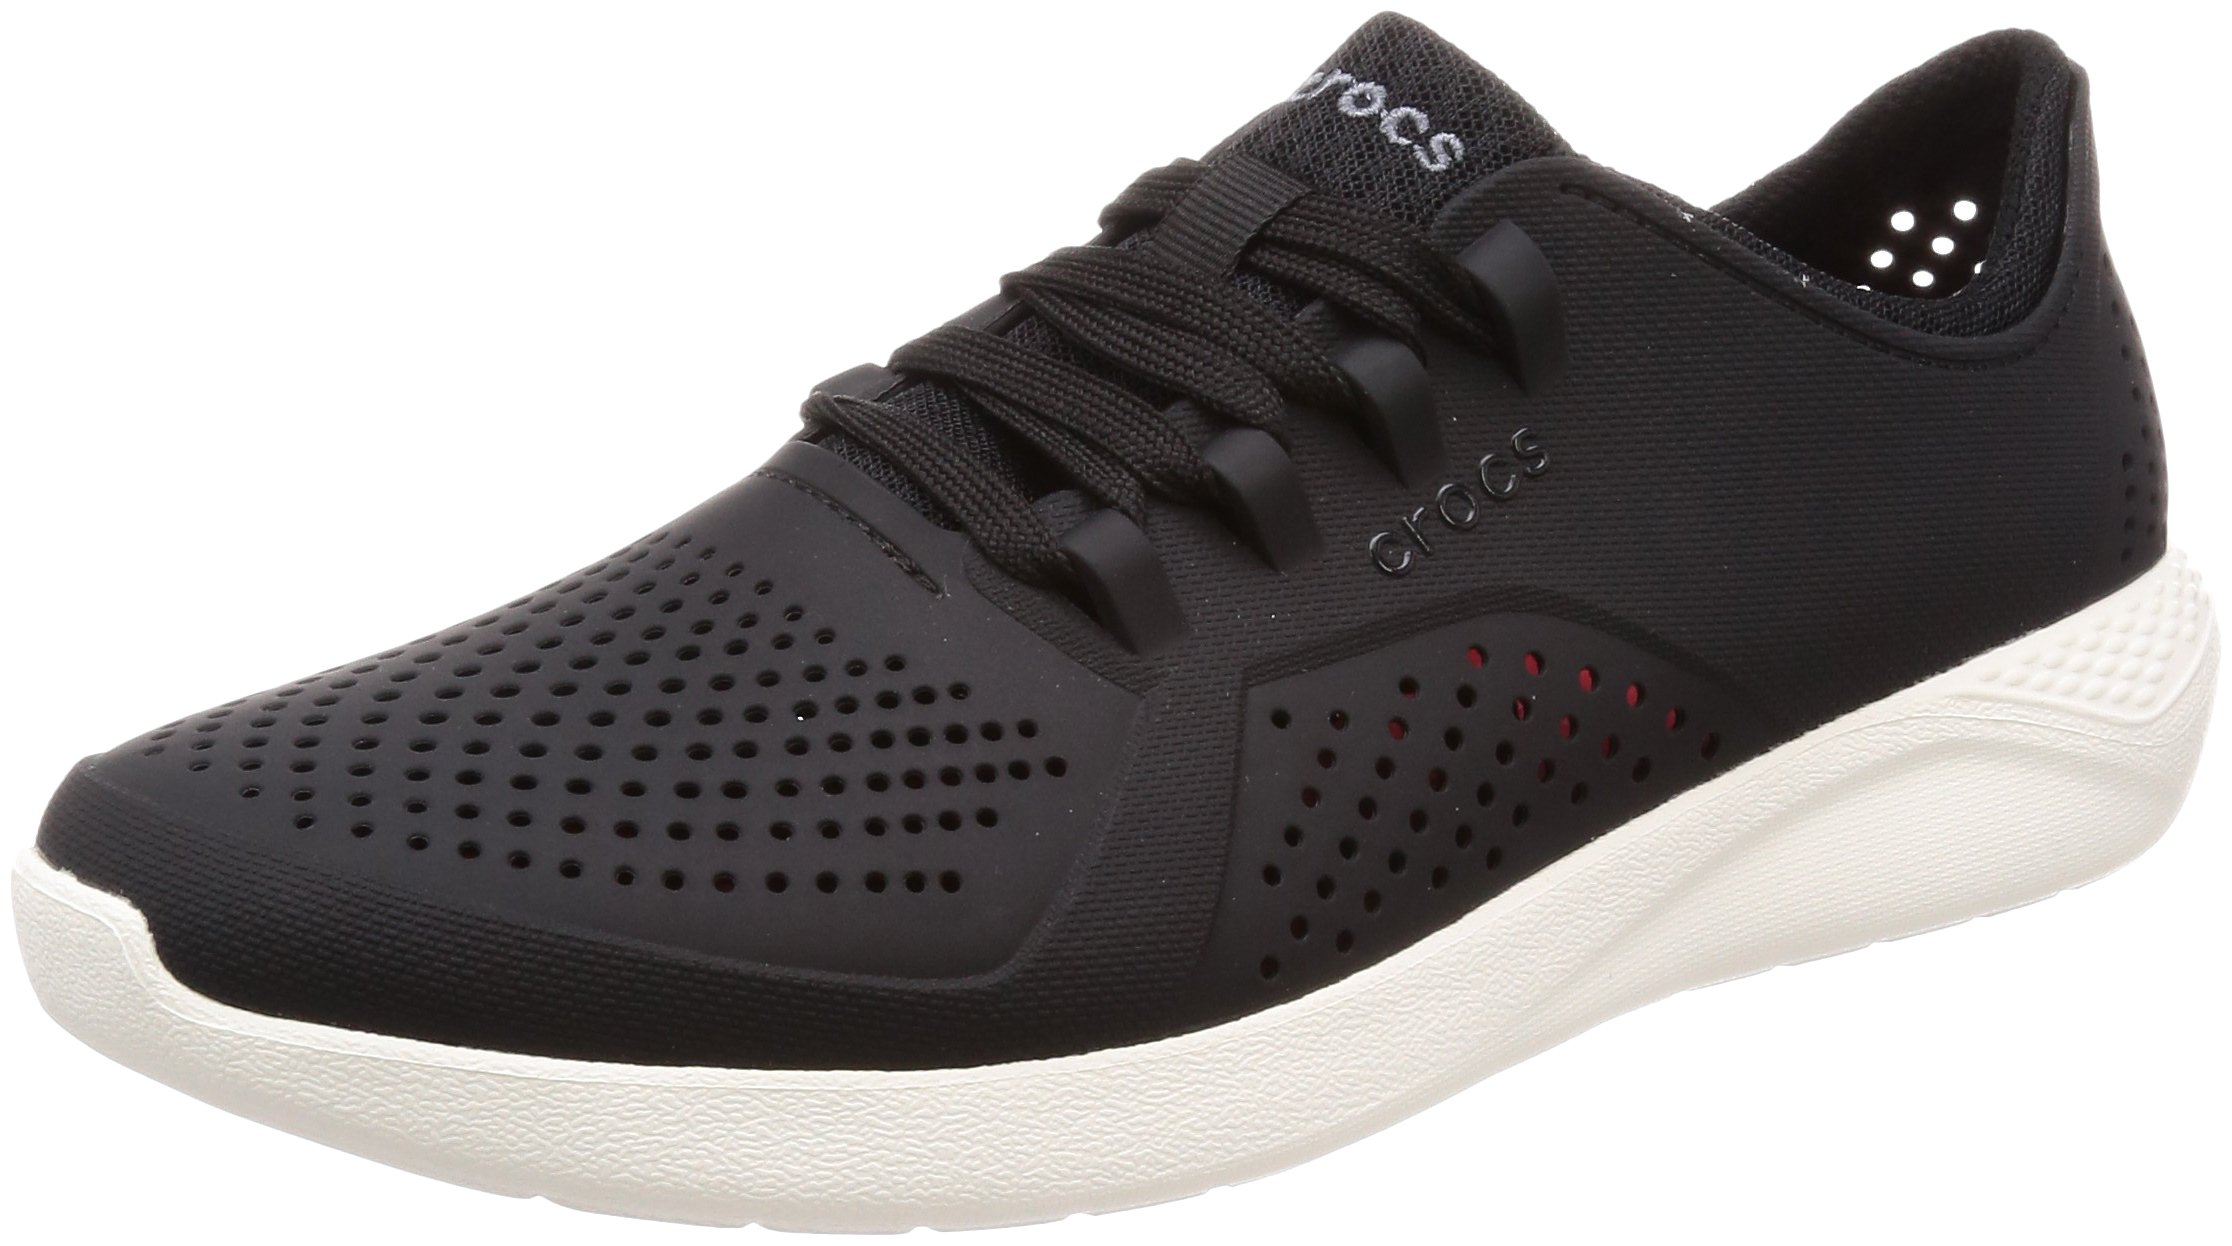 Crocs Men's LtRdPacerM, Black/White, 4 M US